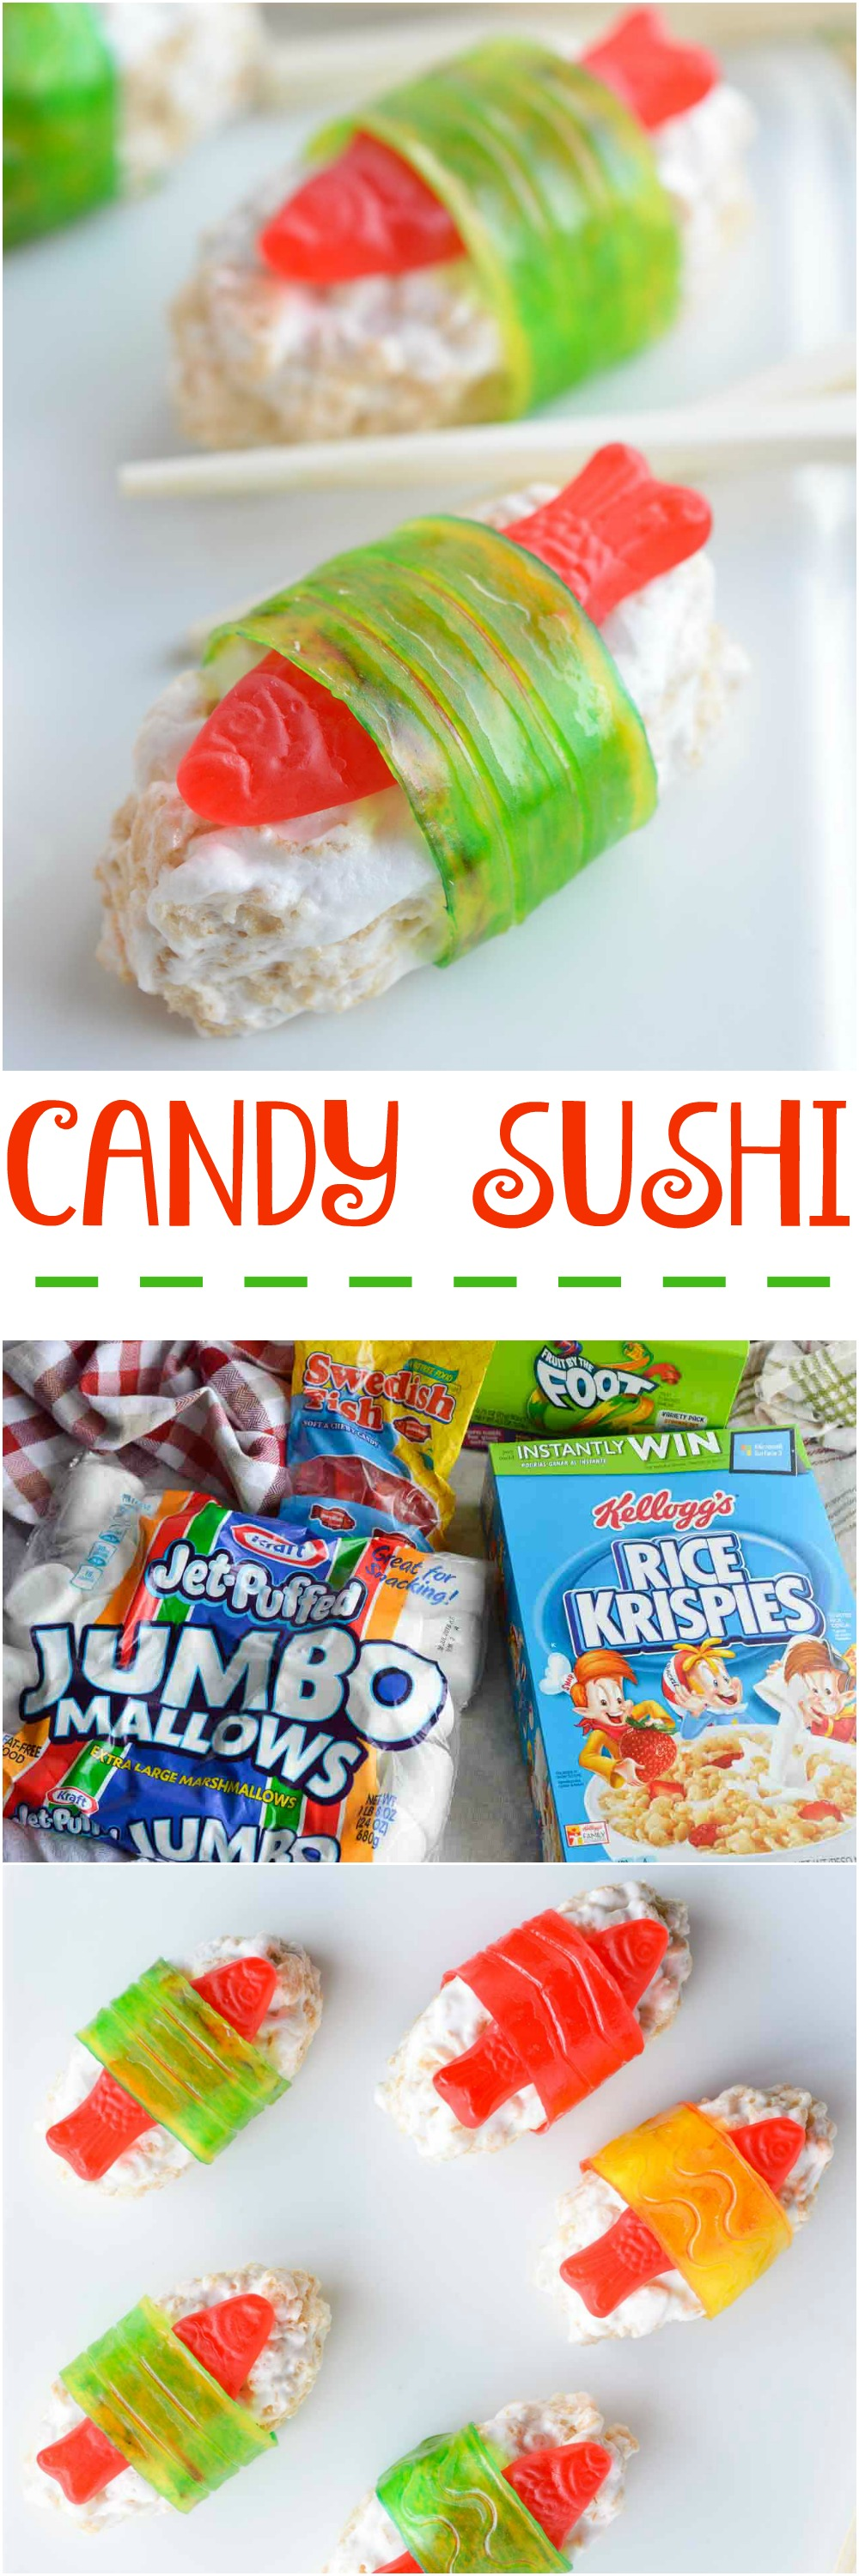 The Kids Will Go Crazy For This Candy Sushi Made With Rice Crispy Treats